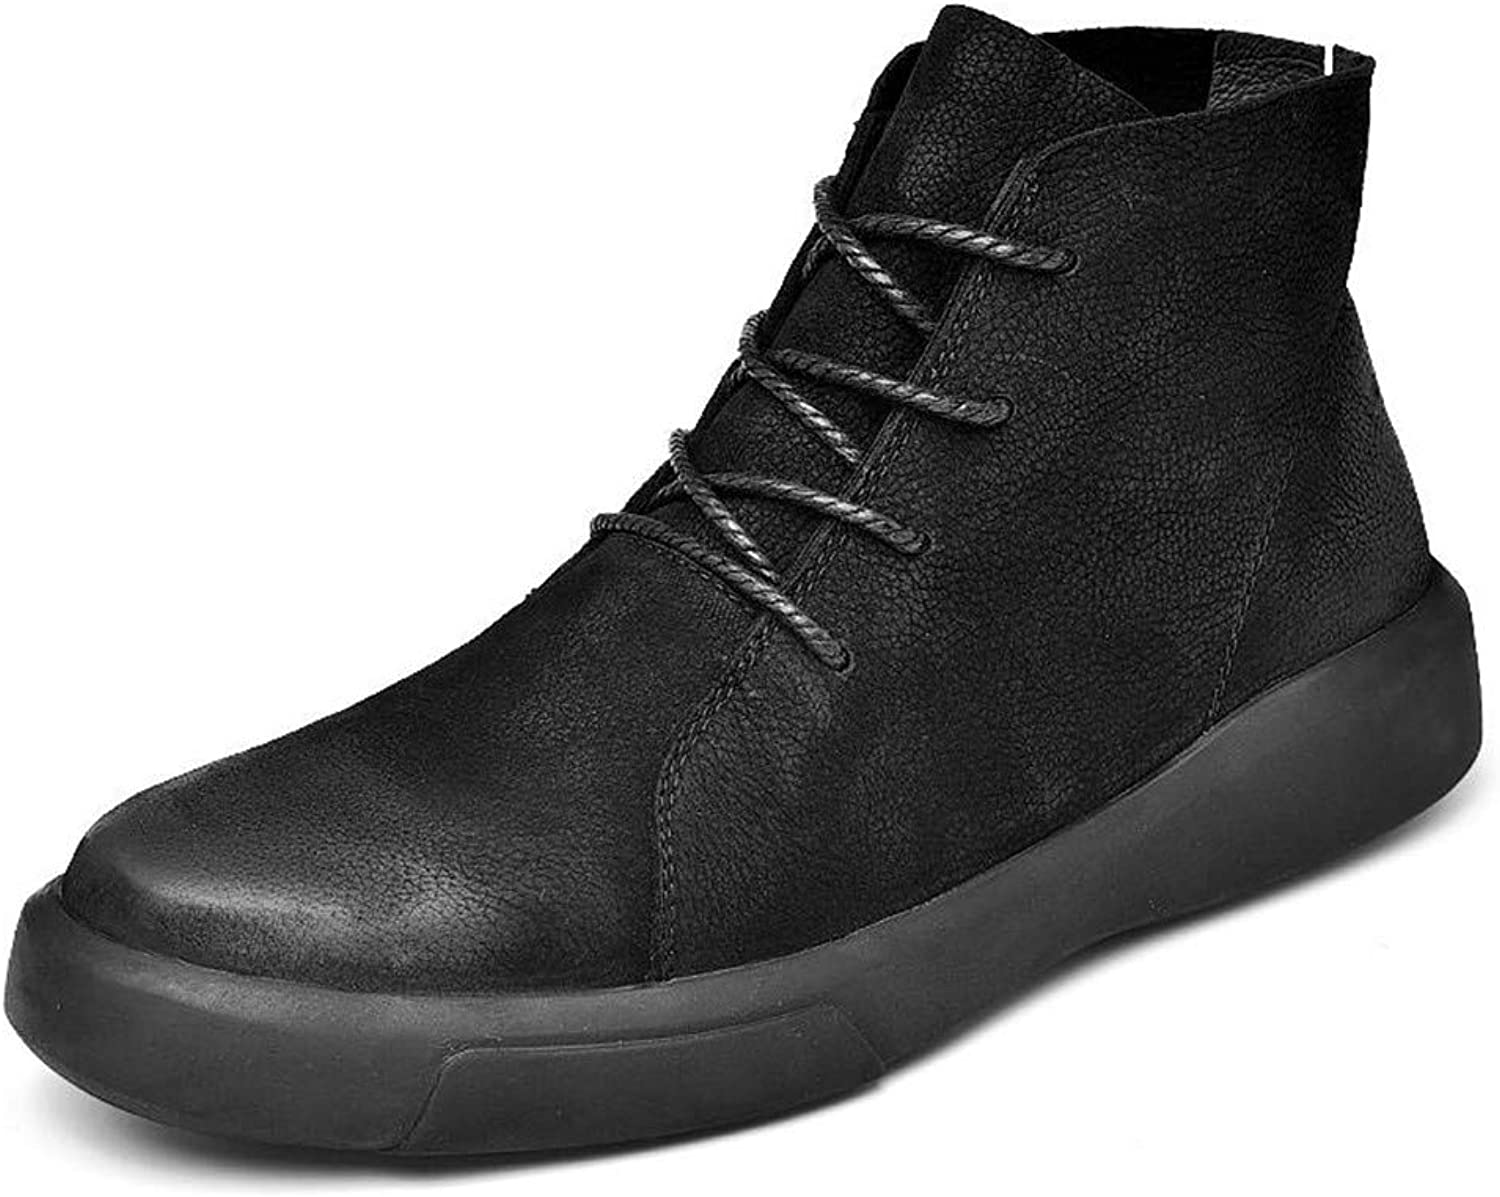 IDNG Basketball shoes Men Boots Autumn and Winter Snow Boots Men Winter Boots Work shoes